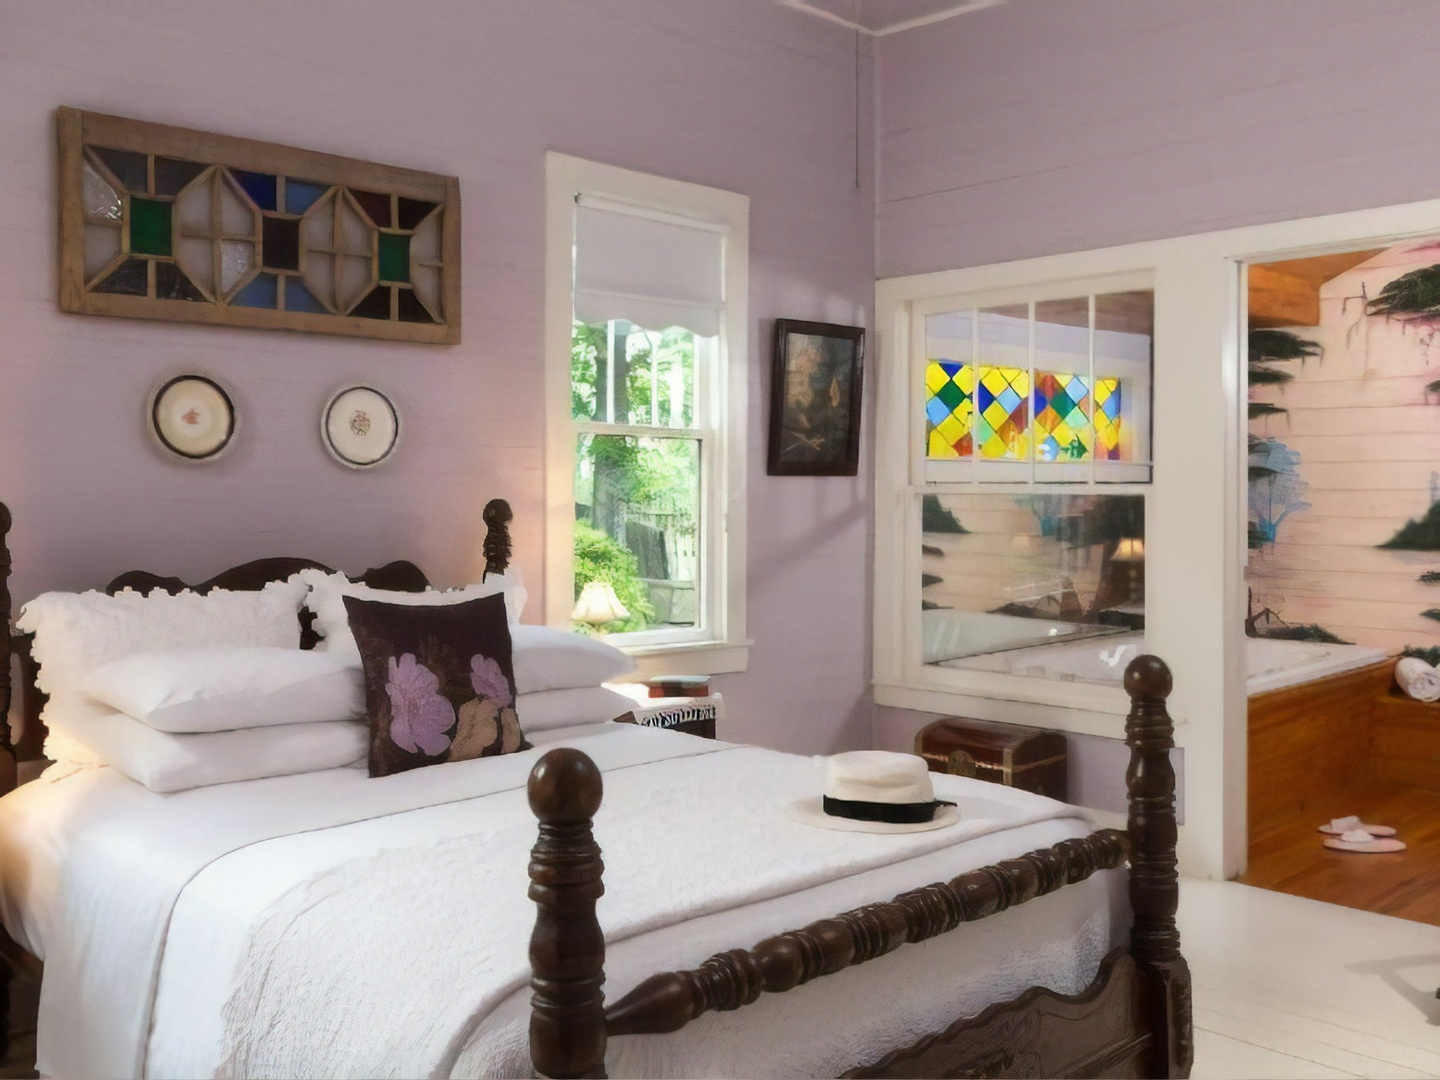 A bedroom with a large bed in a room at Maison D'Memoire B&B Cottages.